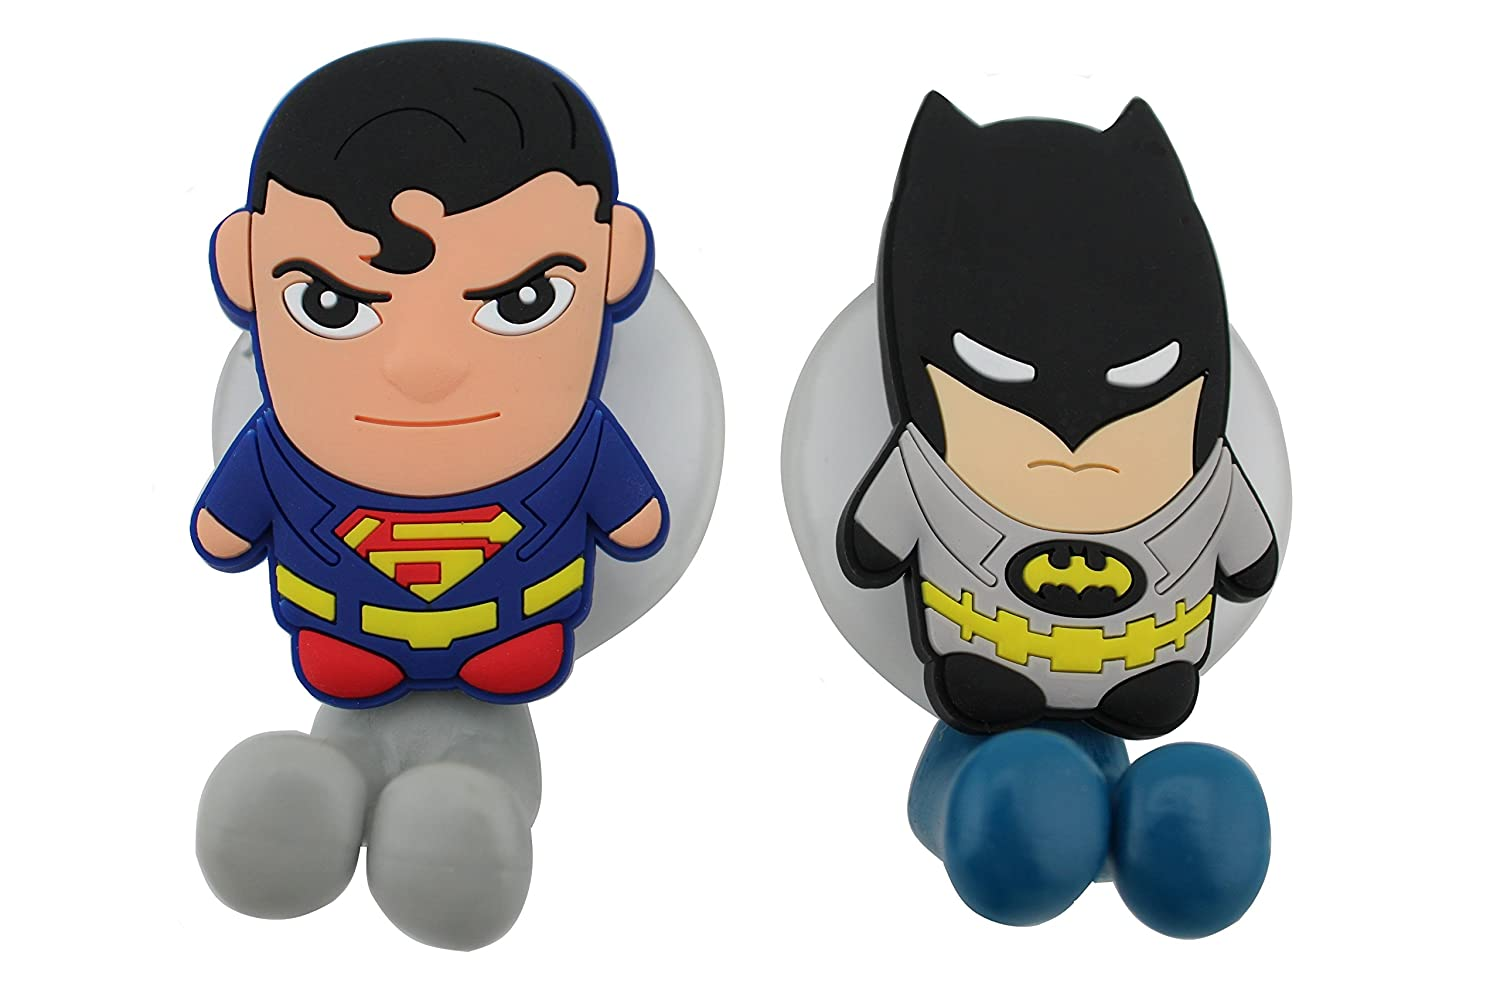 Amazon.com: Finex® *Set Of 2* DC COMICS SUPERHEROES Batman Vs U0026 Superman  Toothbrush Holders With Suction Cup For Wall In Bathroom At Home: Home U0026  Kitchen